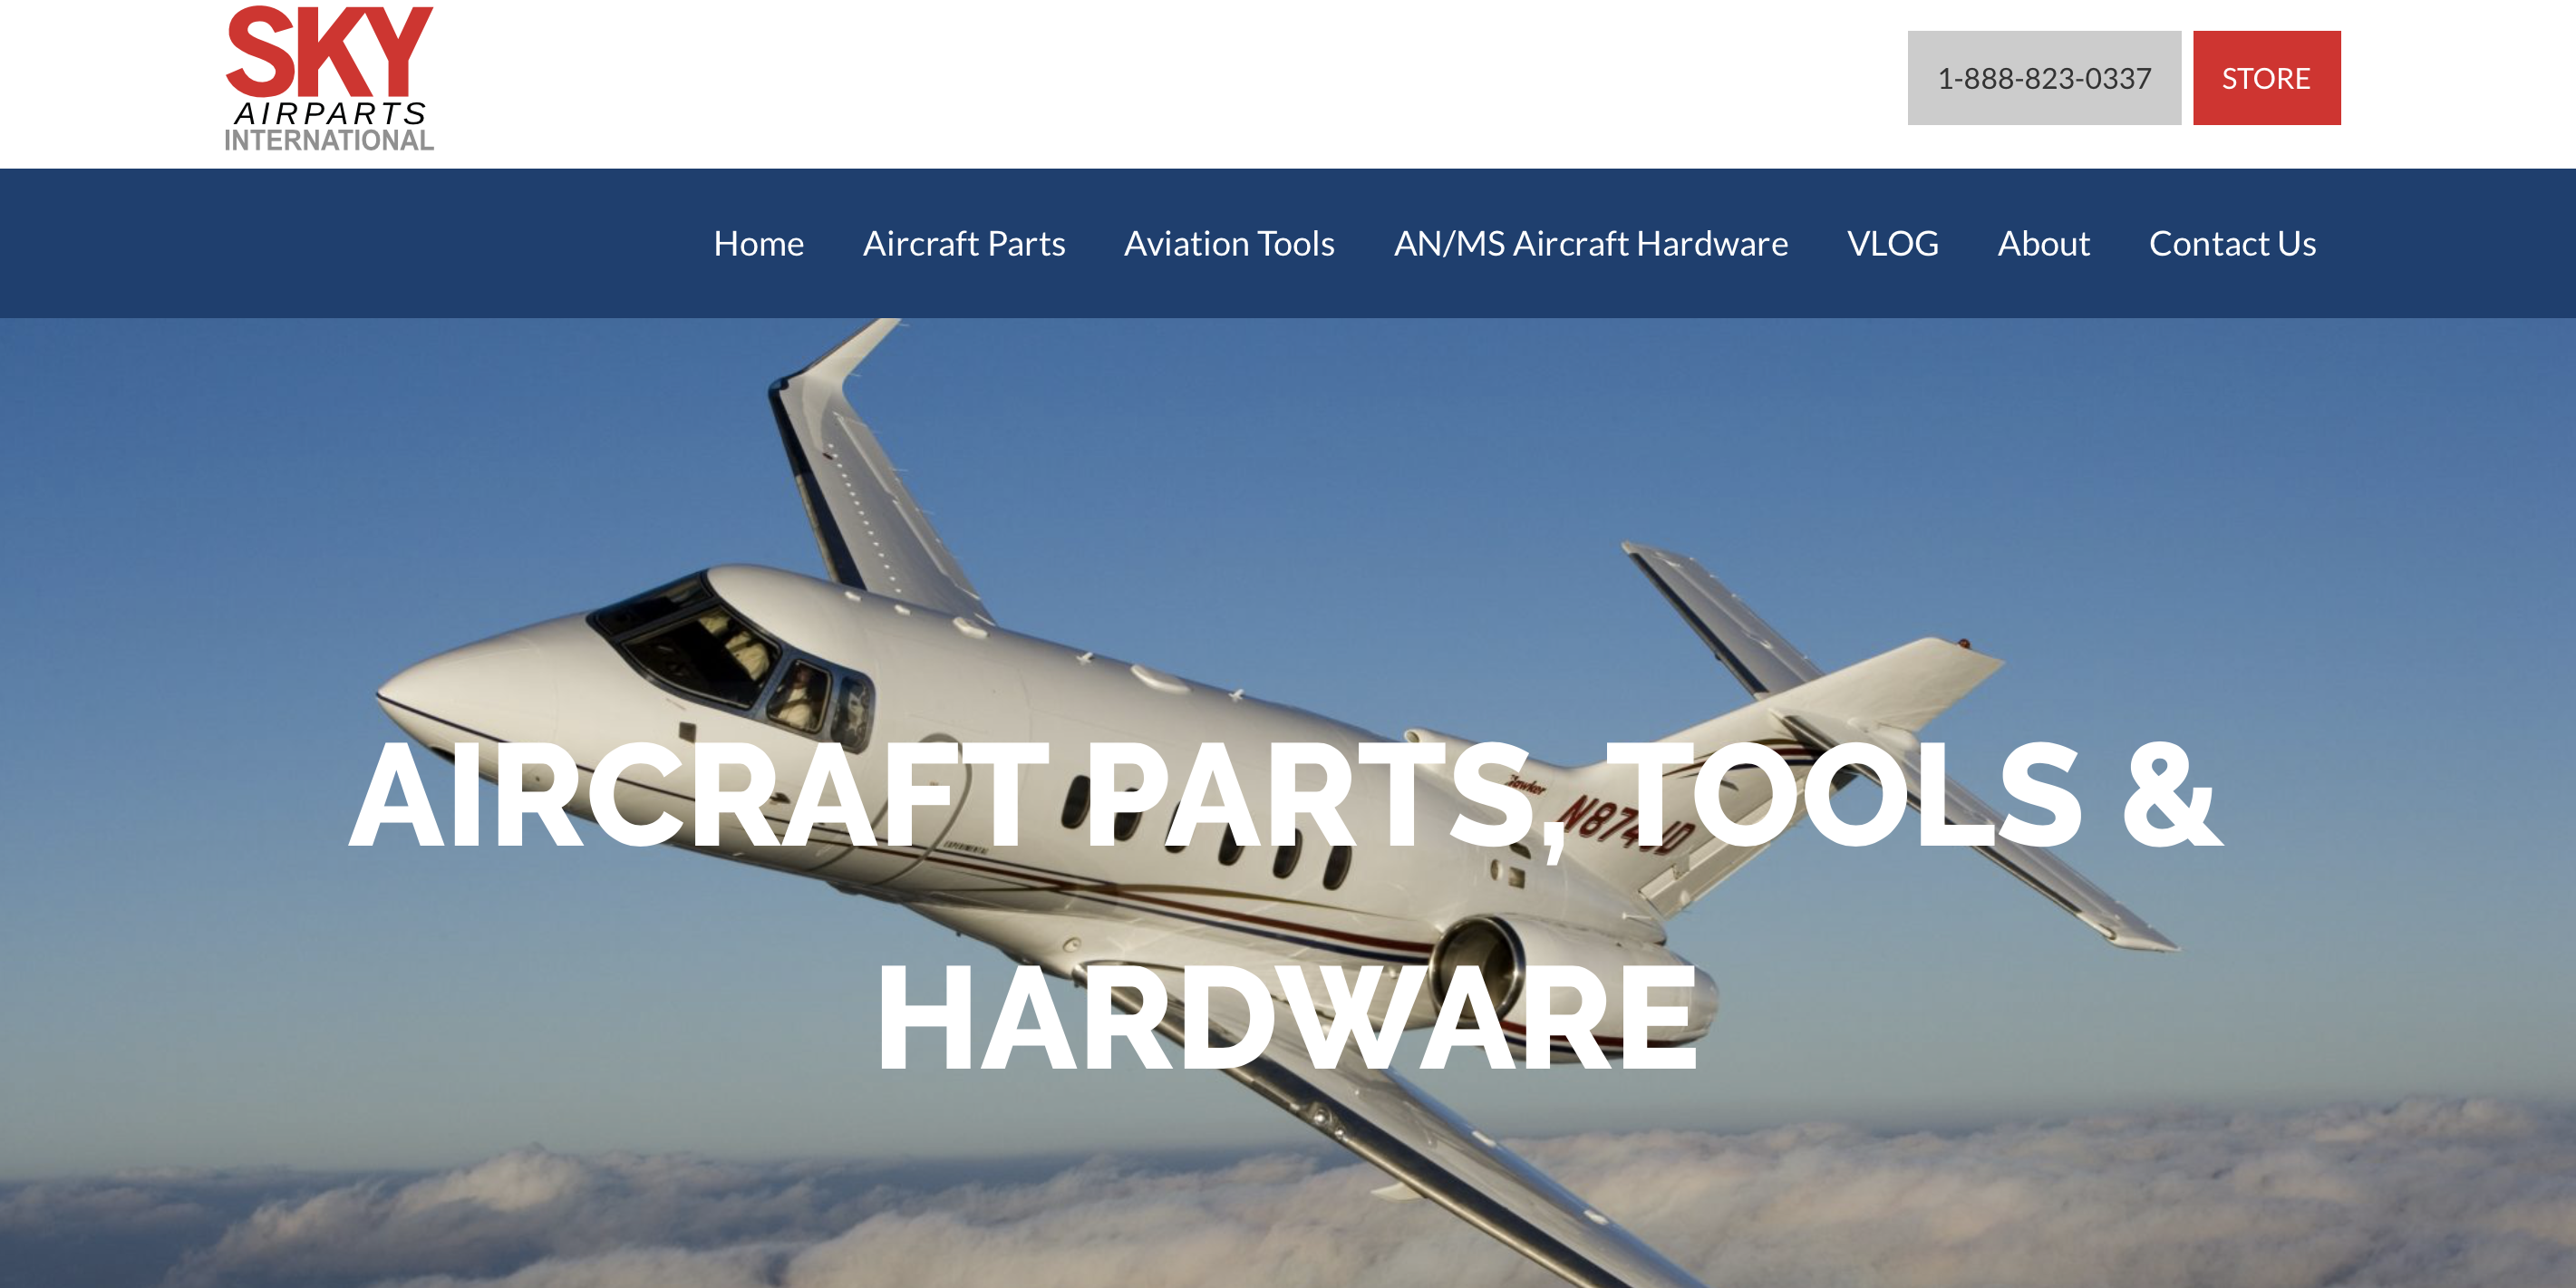 Sky Airparts homepage - after redesign